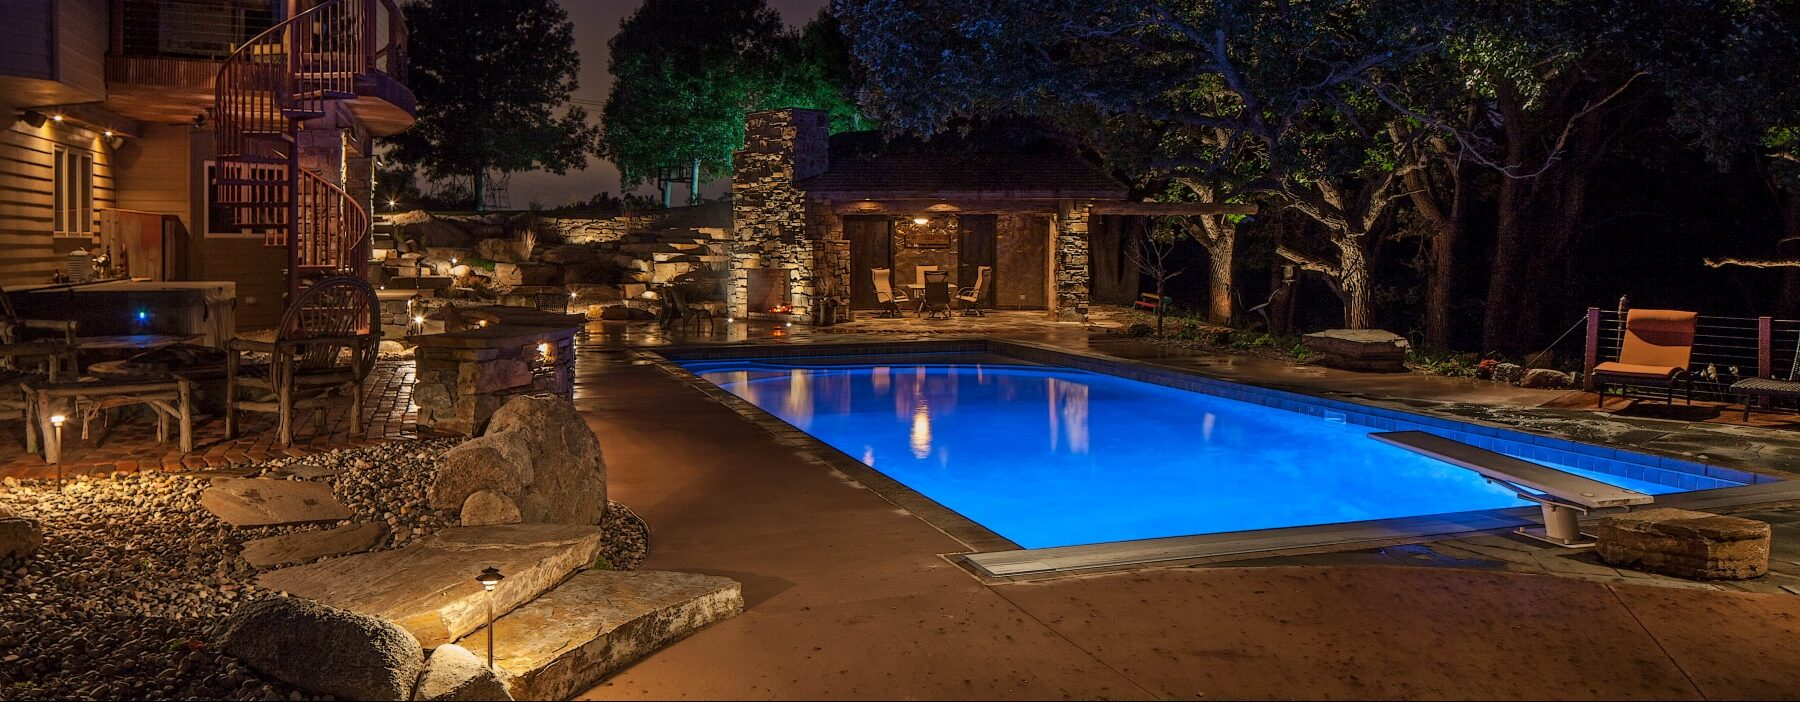 Landscape Lighting Professional : Free guide to hiring a landscape lighting professional